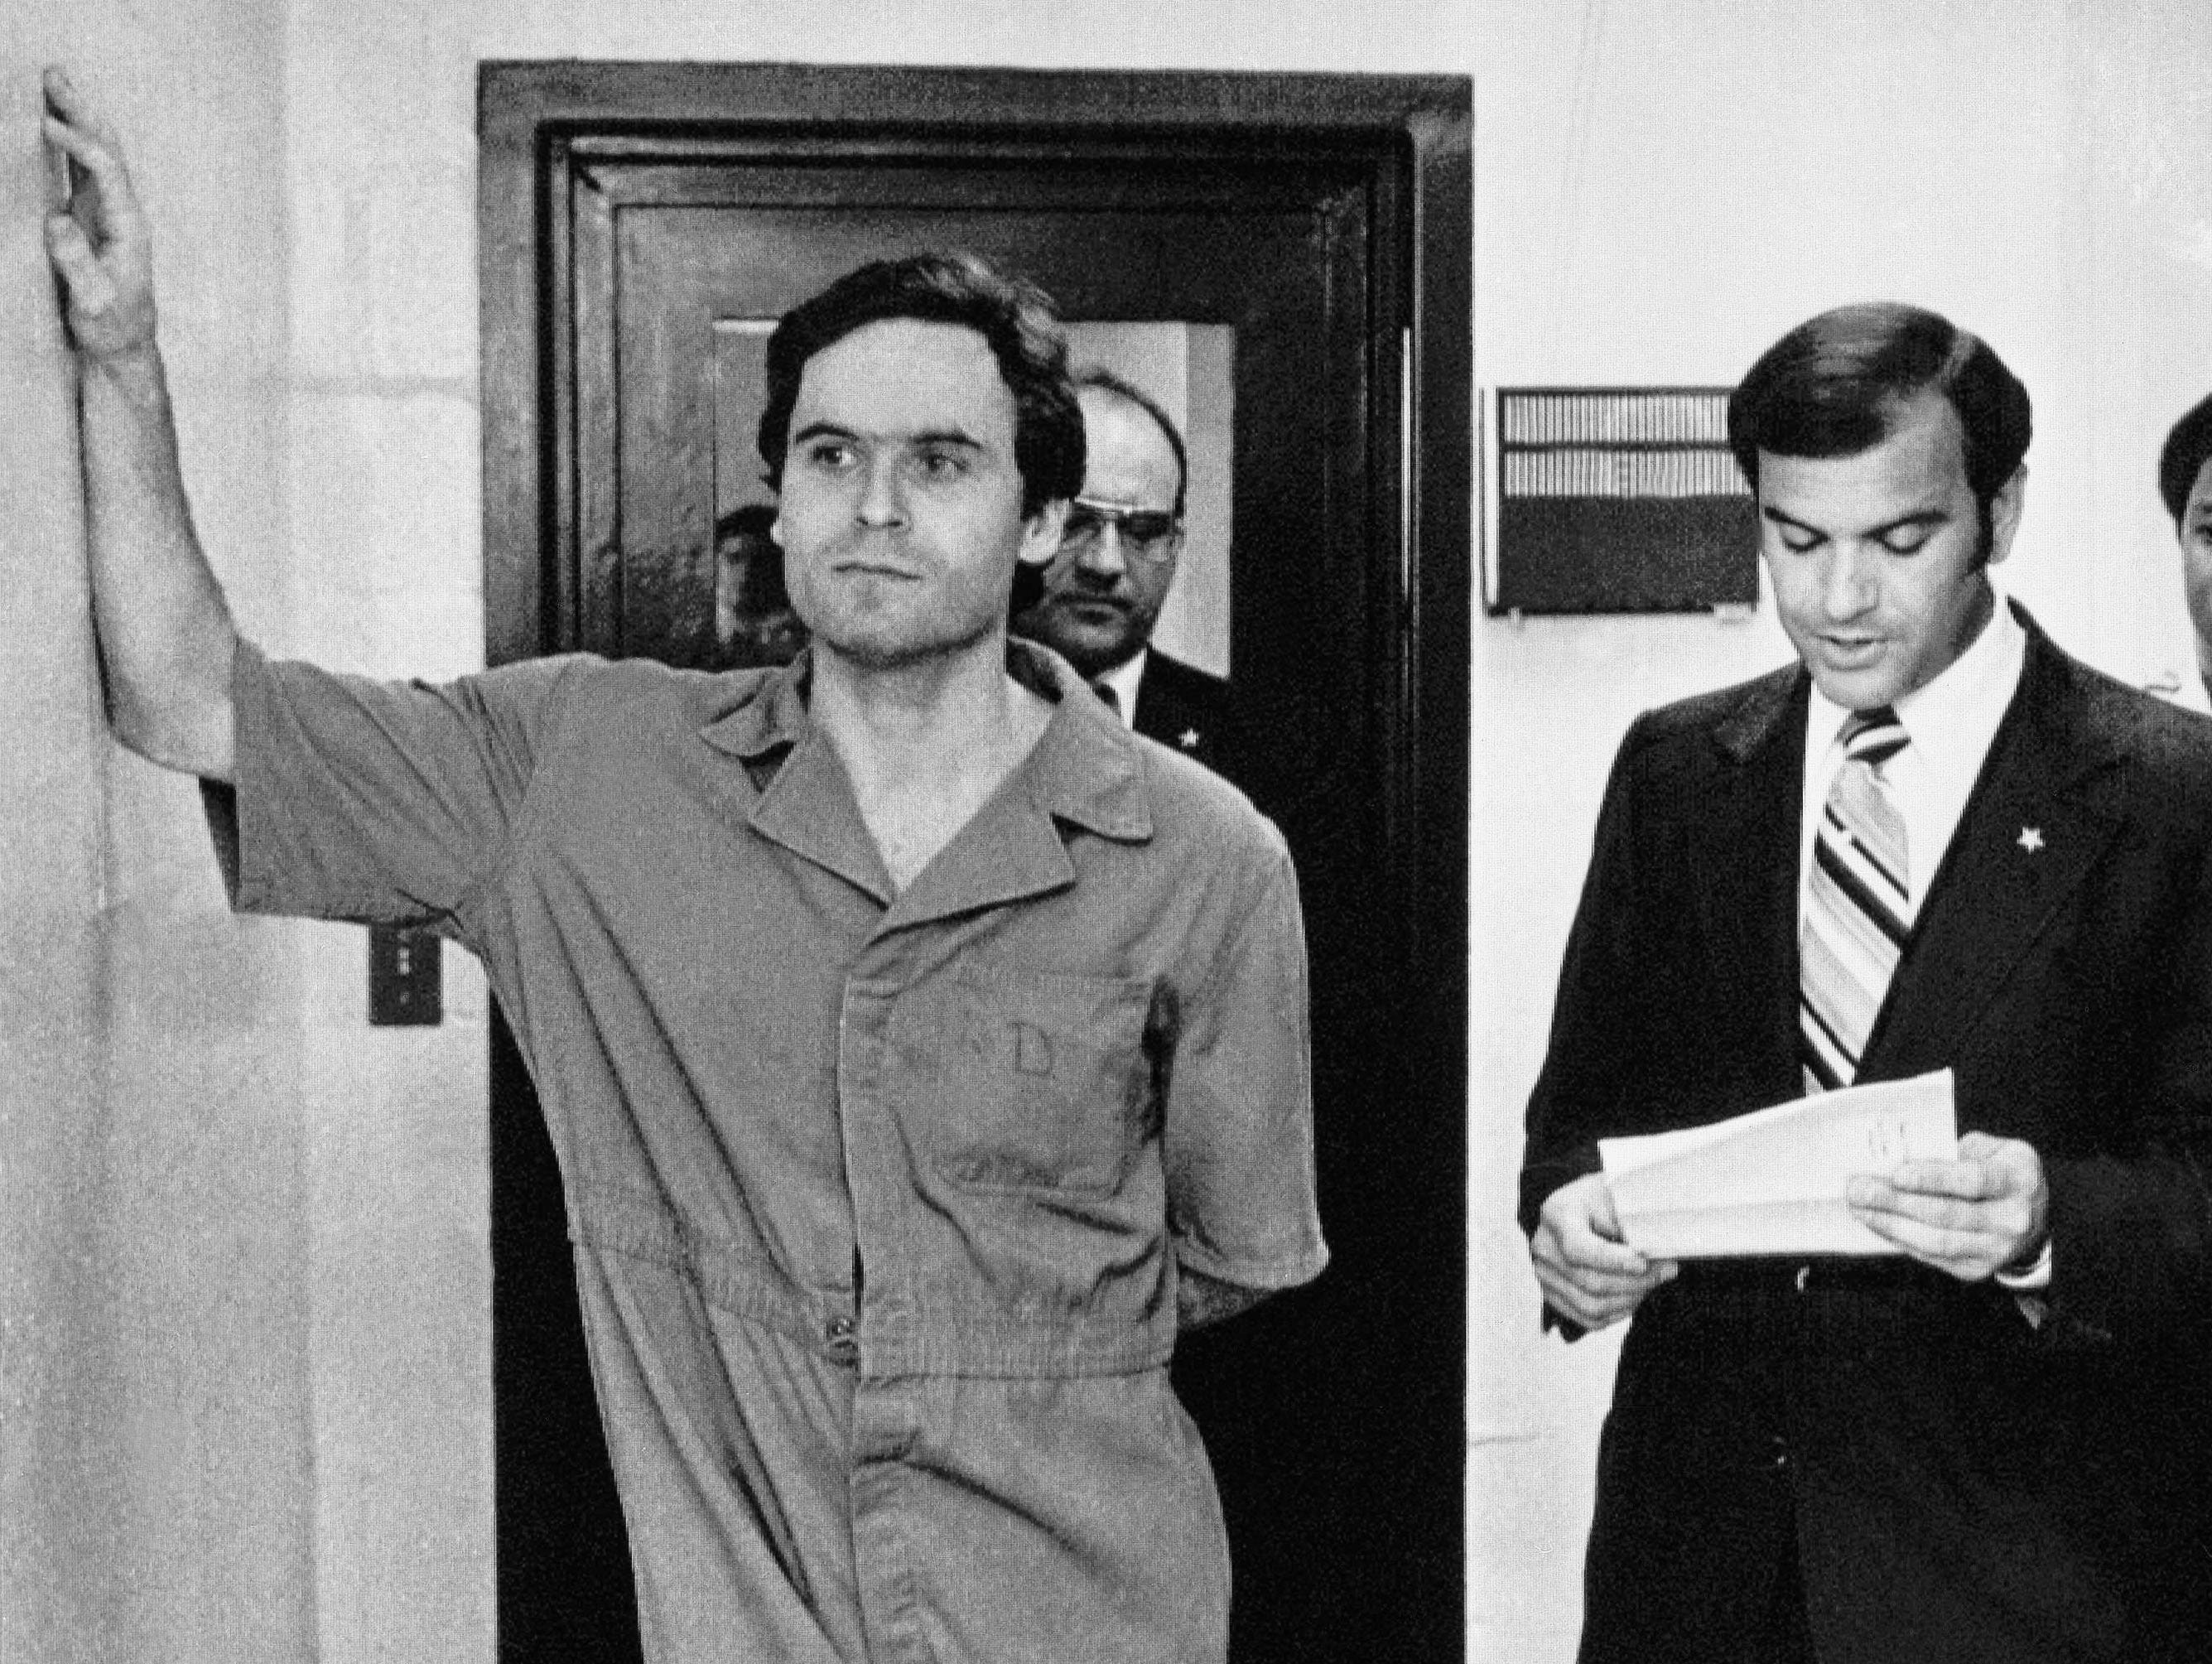 Theodore Bundy makes himself comfortable as Sheriff Ken Katsaris reads the indictment handed down by the Leon County Grand Jury, July 27, 1978 in Tallahassee, Fla.  Bundy was indicted on two counts of first degree murder; three counts of attempted murder and two counts of burglary.